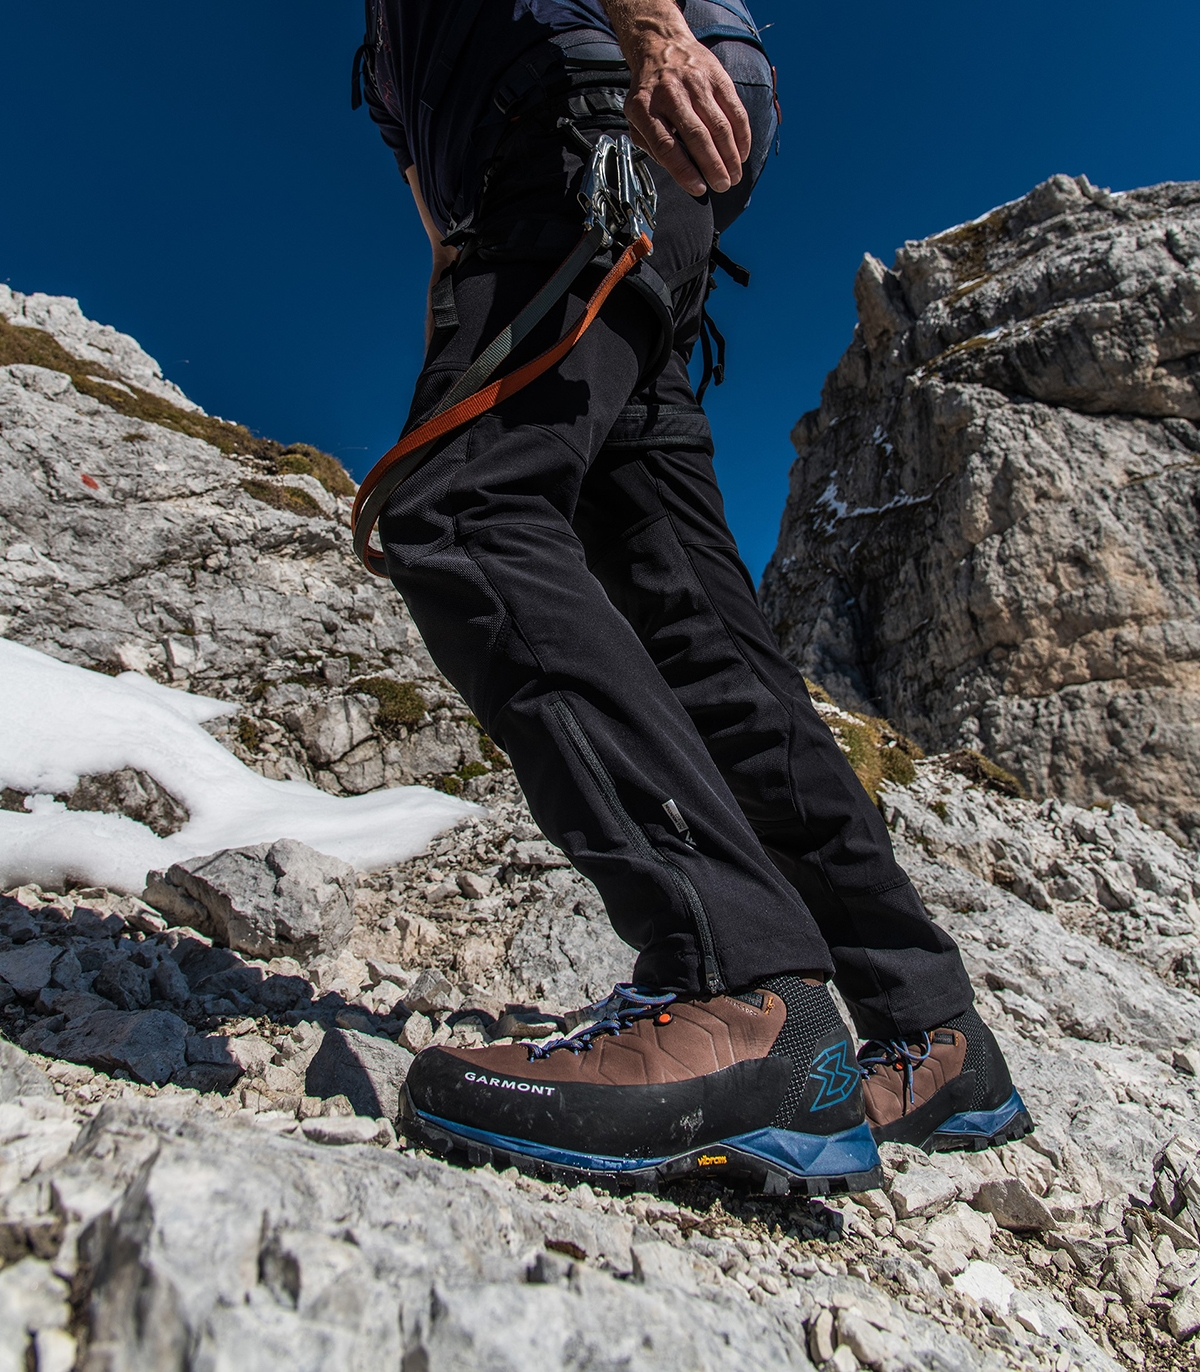 Toubkal: the perfect boot for challenging excursions